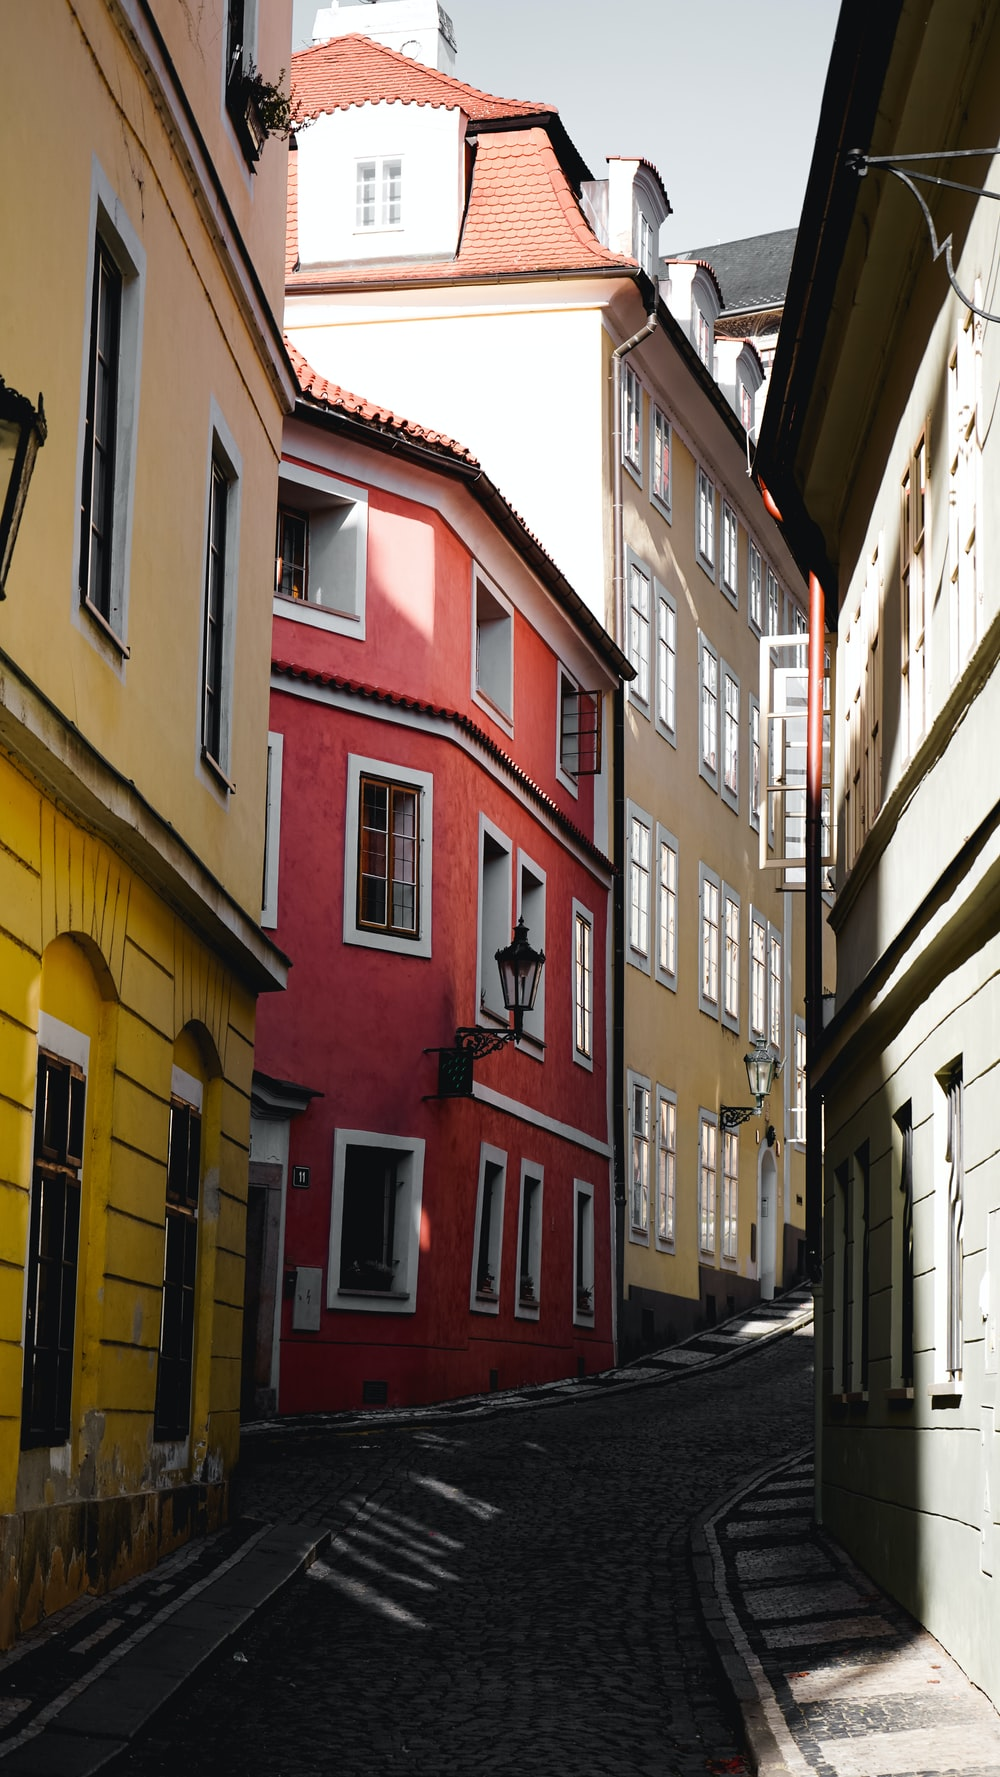 white, red, and yellow concrete buildings